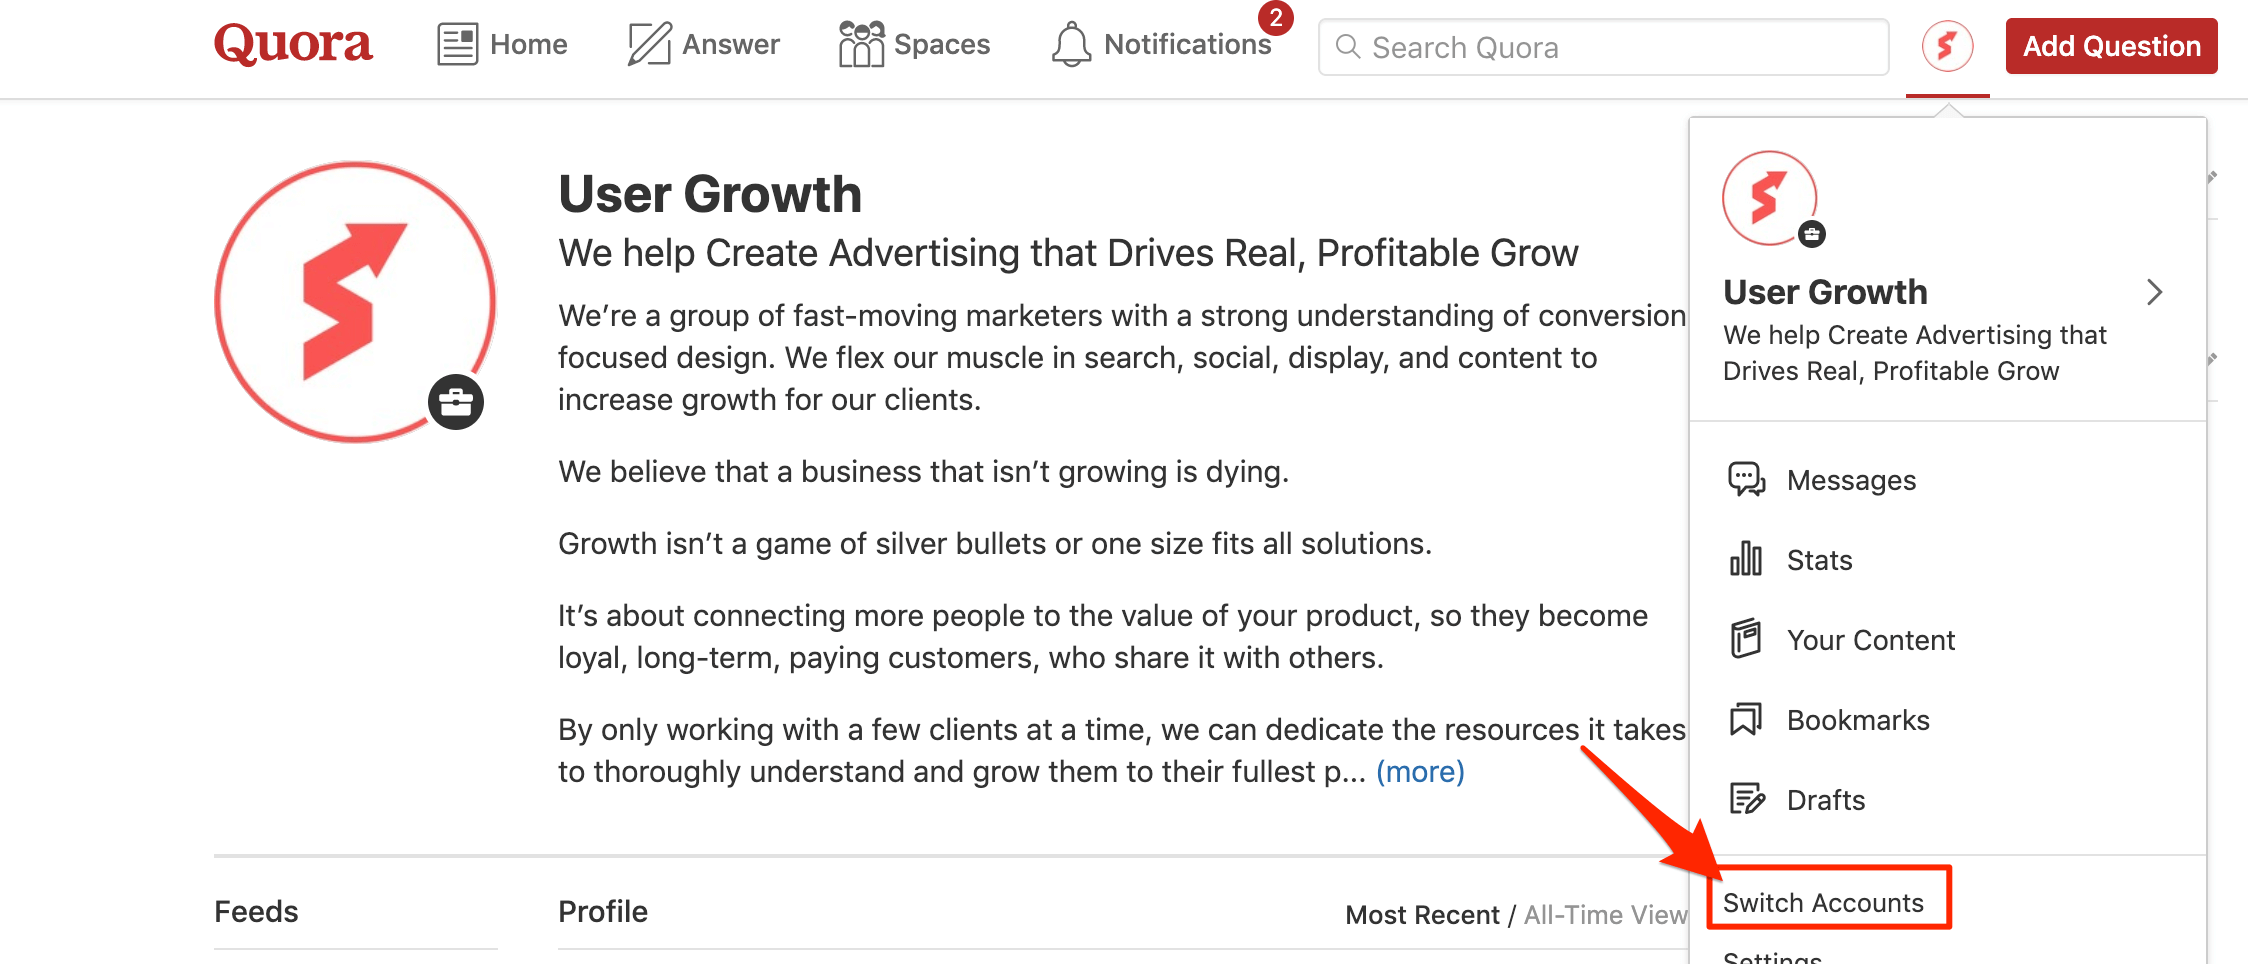 """Switching between your business and personal accounts on Quora using the """"Switch Accounts"""" option"""